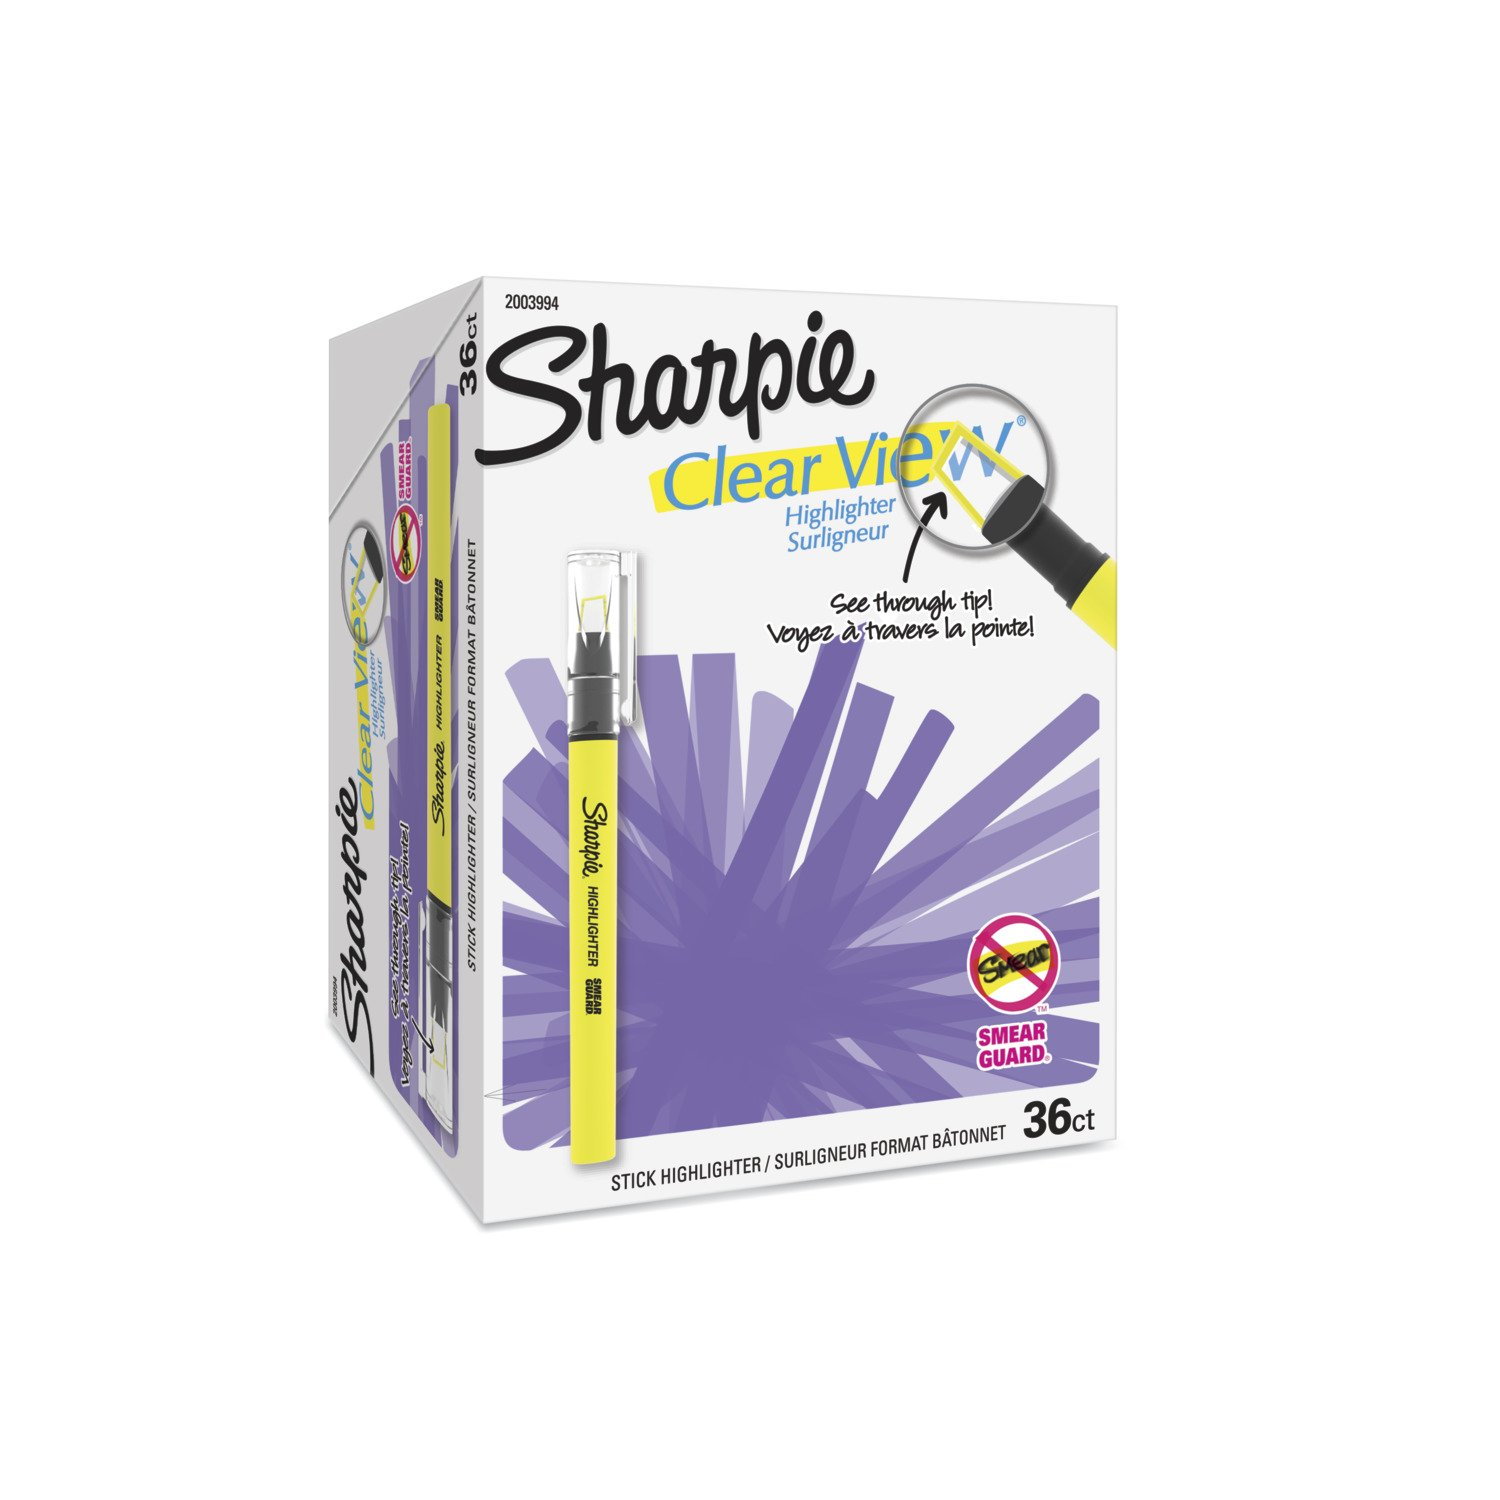 Sharpie Clear View Highlighter Stick, Chisel Tip, Assorted Fluorescent, 36 Count by Sharpie (Image #1)